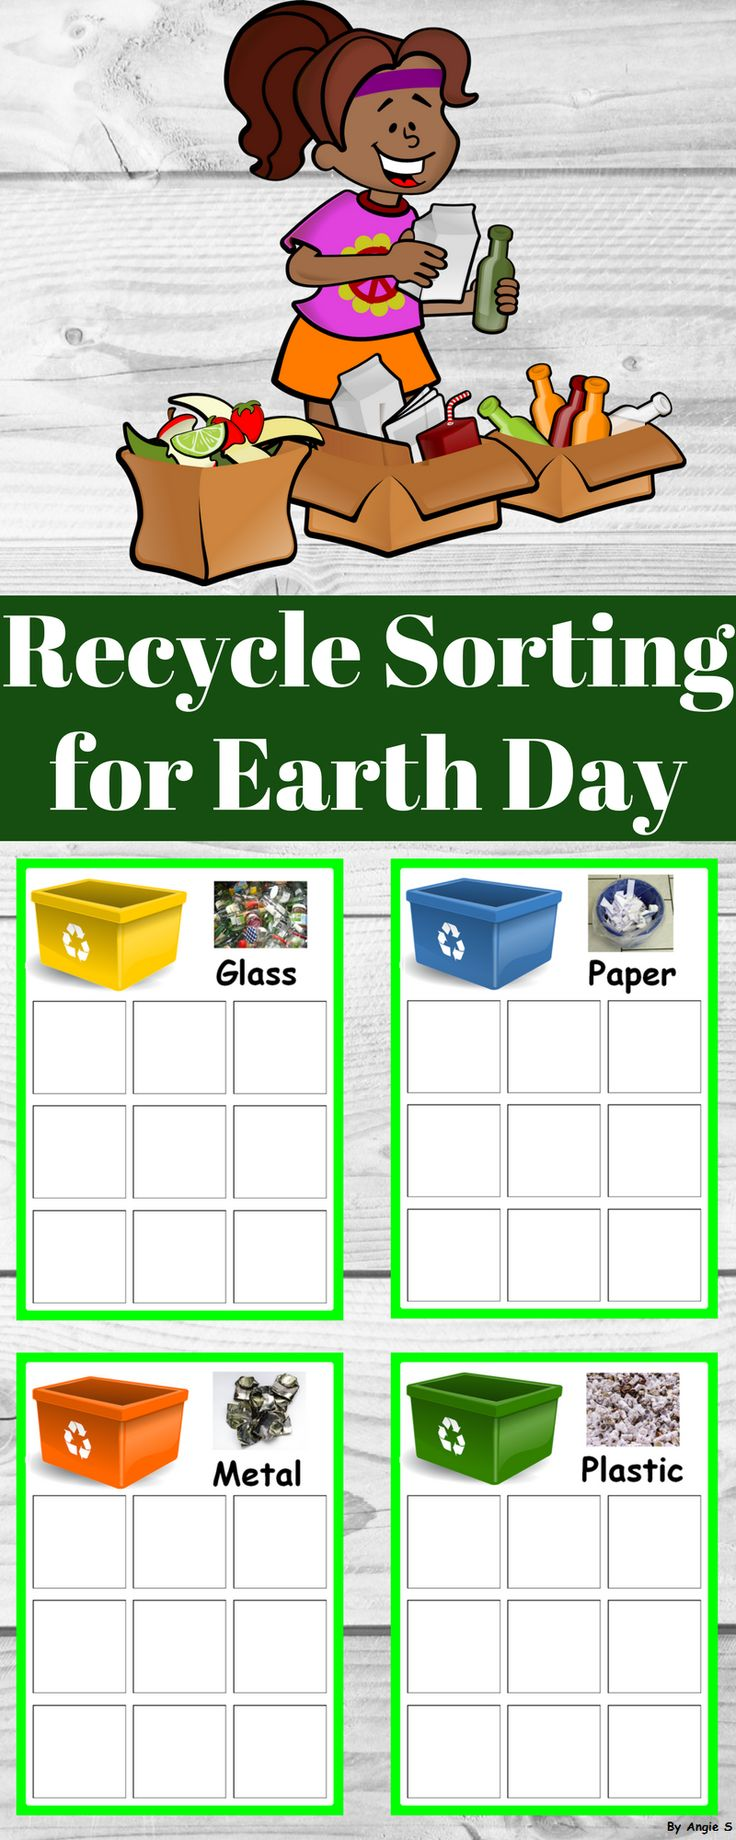 Earth Day Activity - Recycle Sorting for Special Education, kindergarten and preschool students. #earthday #spring #springresources #earthdayresources #recycle #recycling #autism #sped #slp #tpt #teacherspayteachers For more resources follow https://www.pinterest.com/angelajuvic/autism-and-special-education-resources-angie-s-tpt/